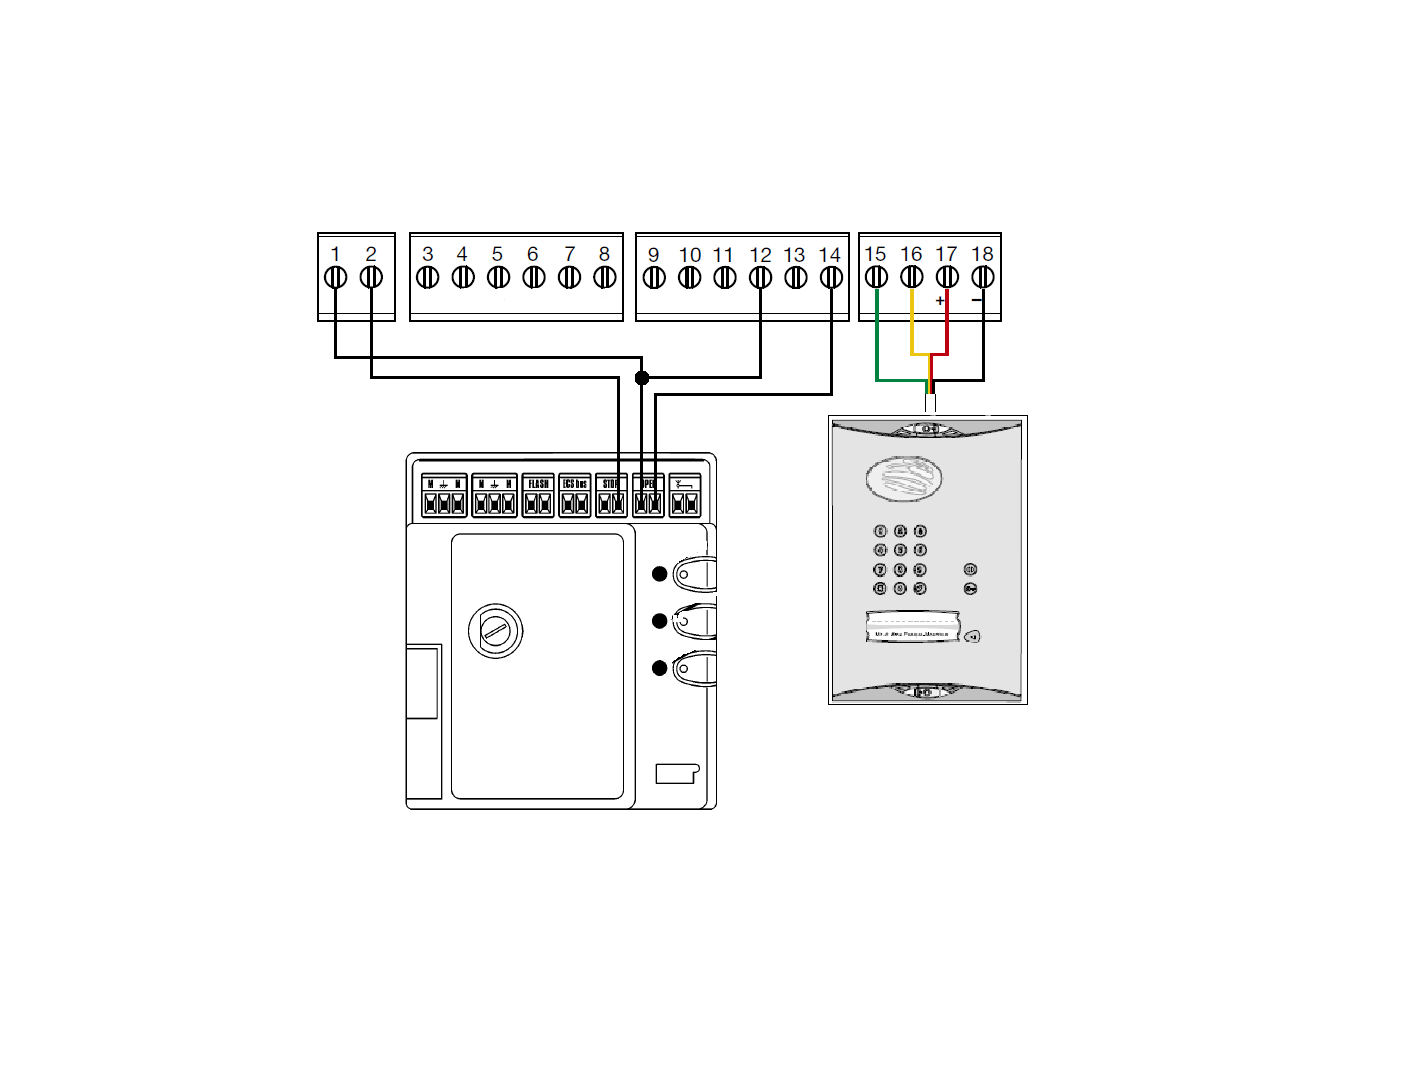 hight resolution of daitem to mhouse simplified wiring diagram marantec wiring diagram marantec wiring diagram marantec garage door opener